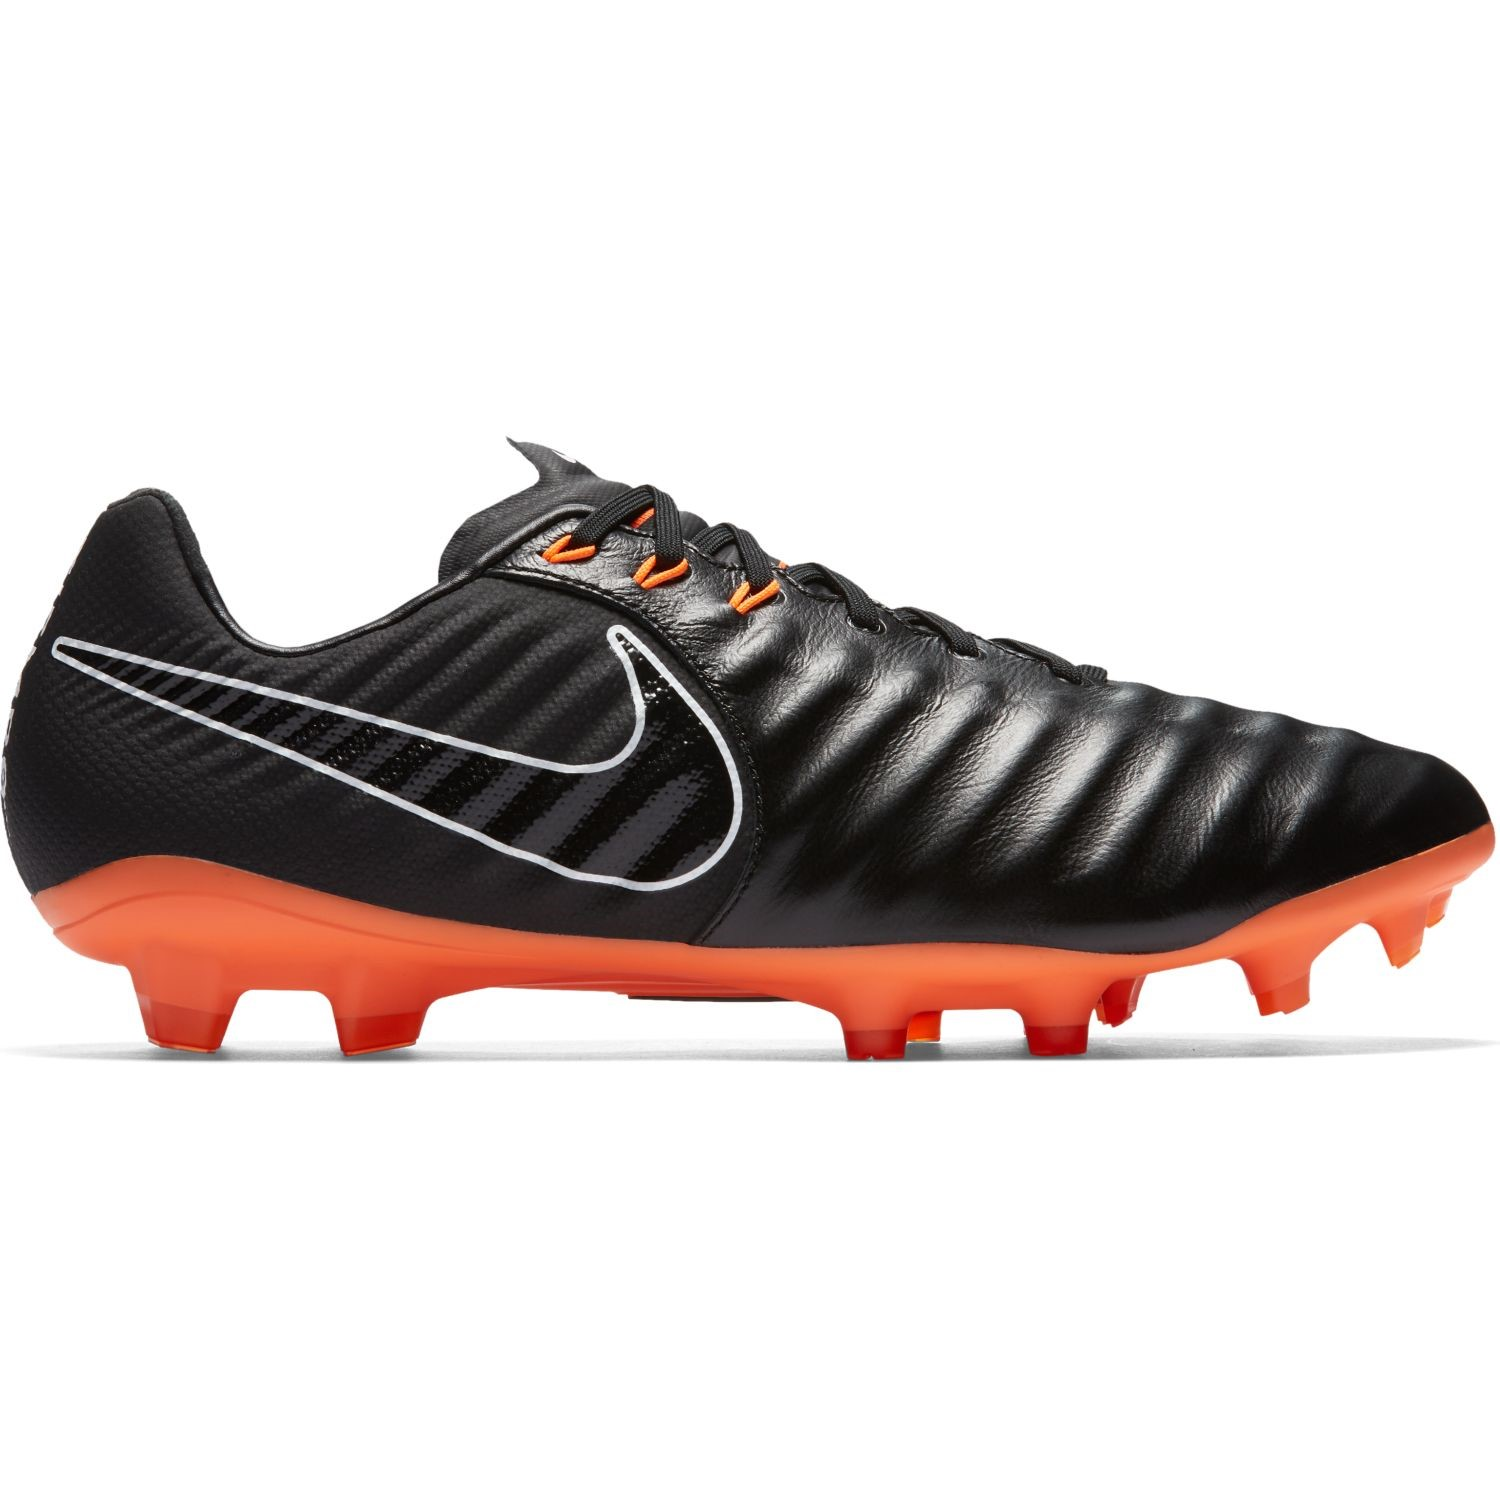 c500694d52ac Nike Tiempo Legend VII Pro FG - Mens Football Boots - Black/Total Orange/